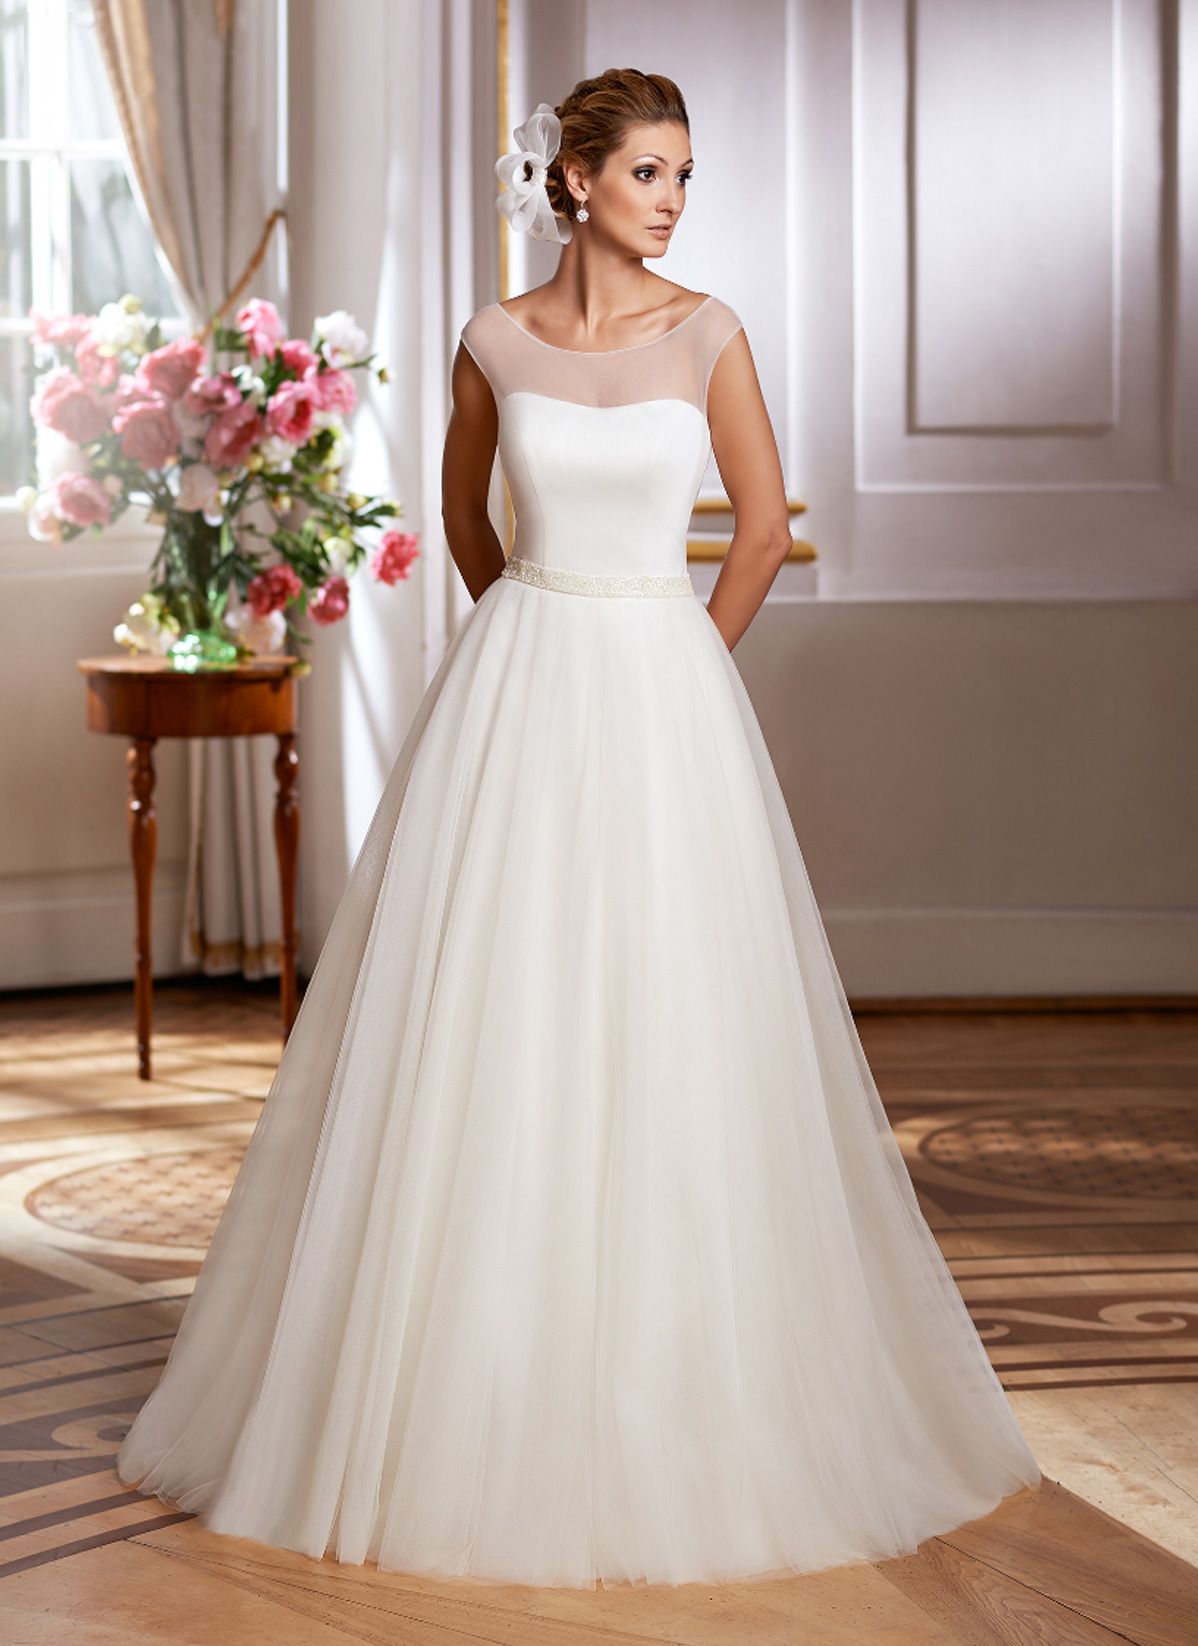 Herm's Bridal <br> Henrietta<br>Size 12 Was £1,150 Now £400